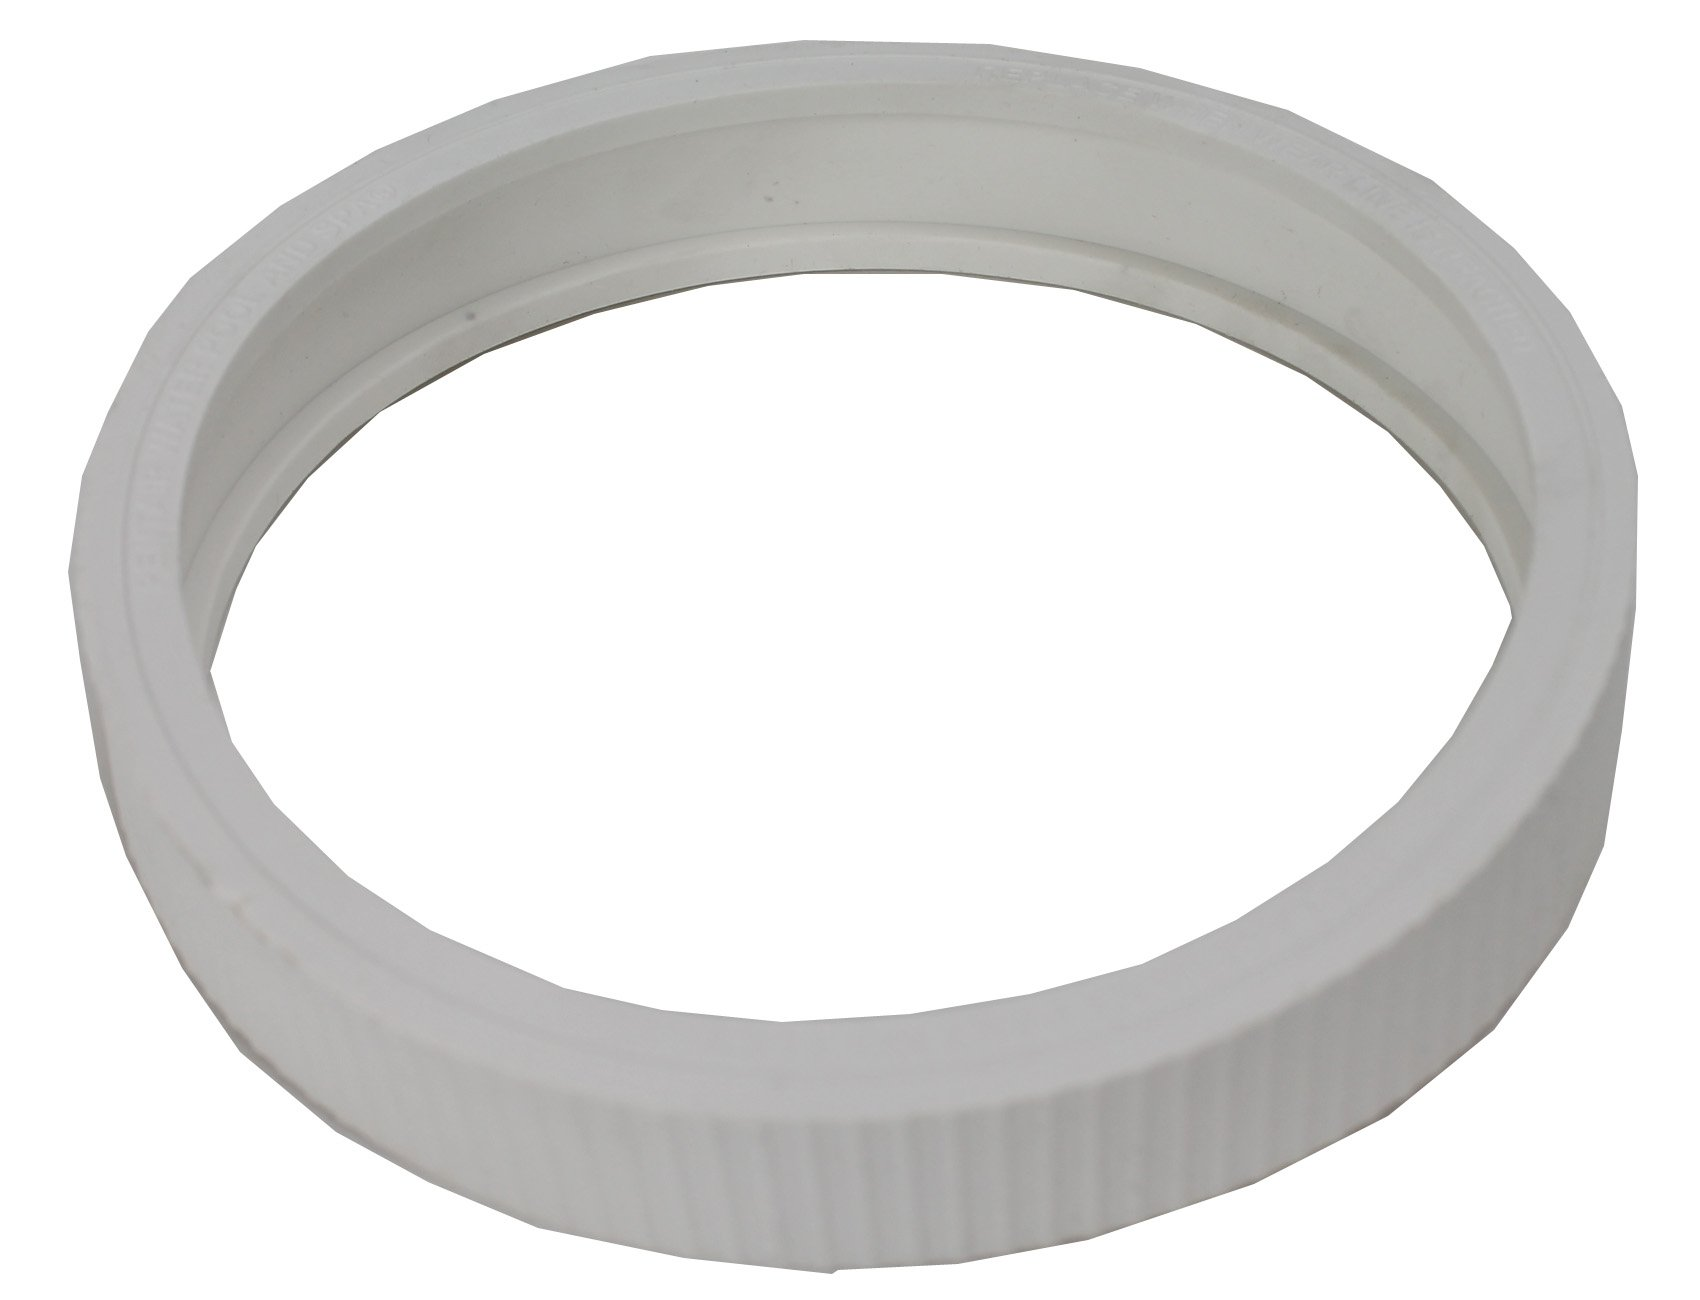 4) Pentair LLC1 Pool Spa Rubber Tire Replacements 4-Wheel Legend Pool Cleaner by Pentair (Image #2)